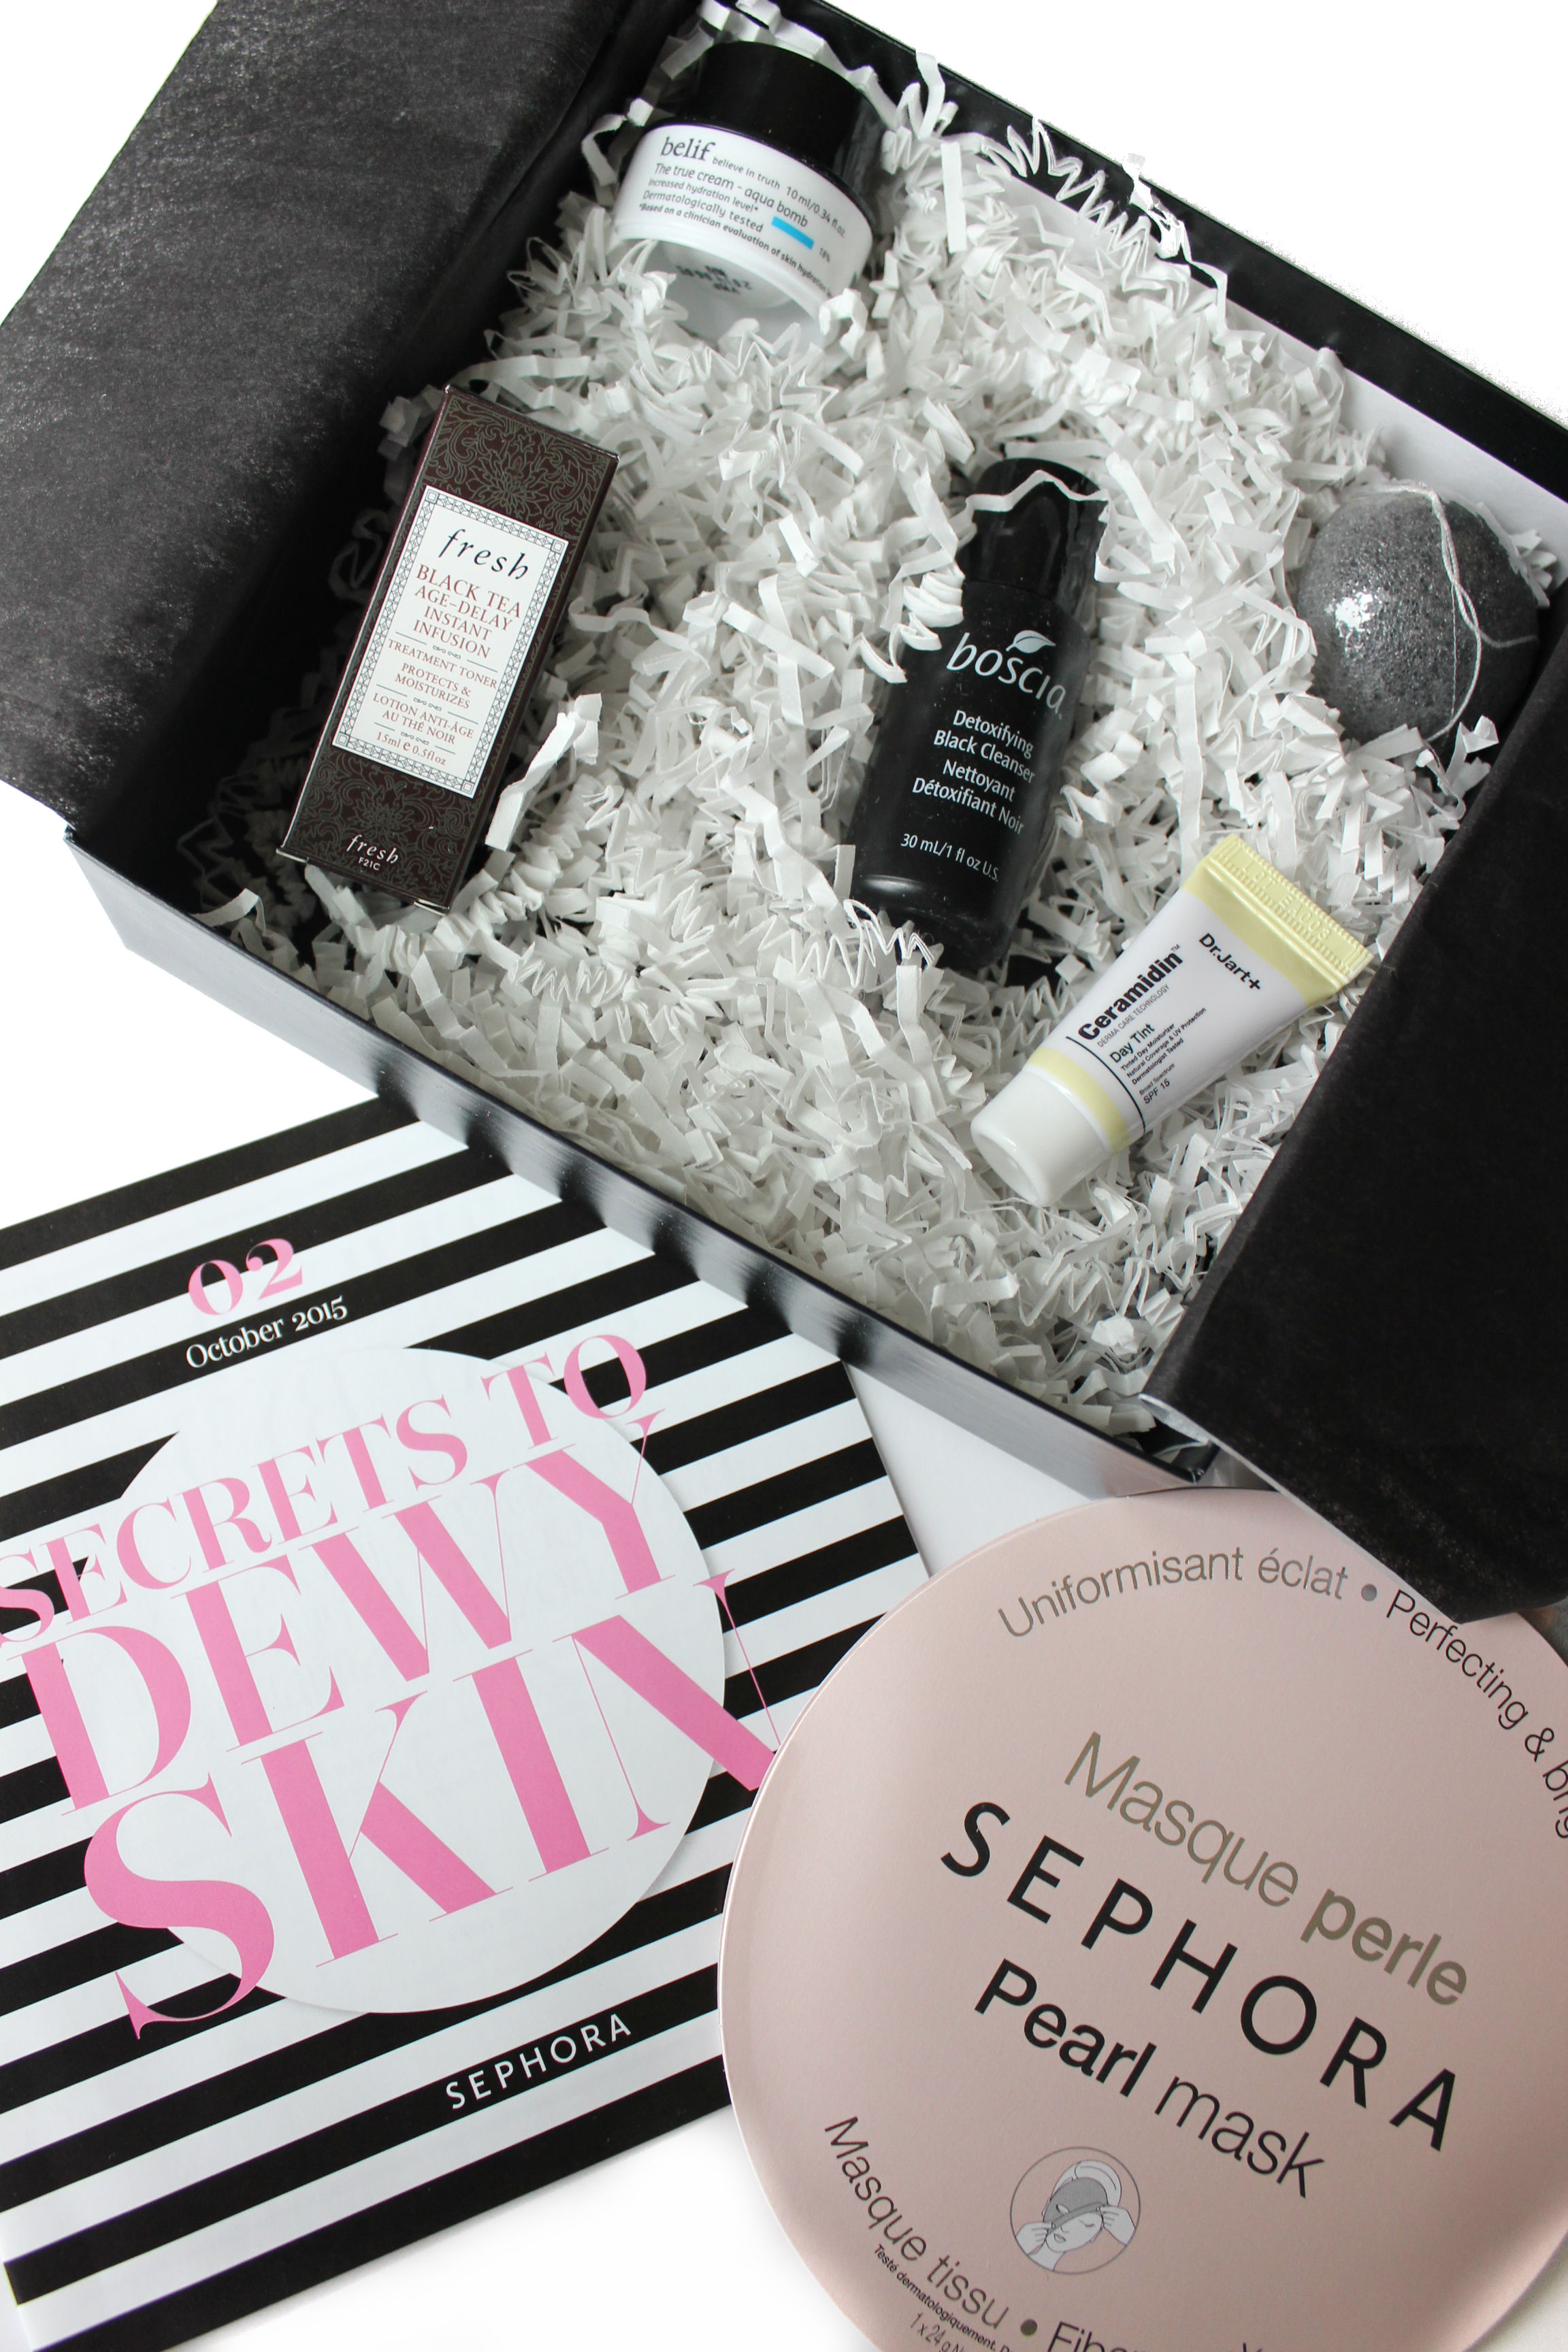 Play by Sephora Subscription Box Unboxing Review on Brighterdarling.com